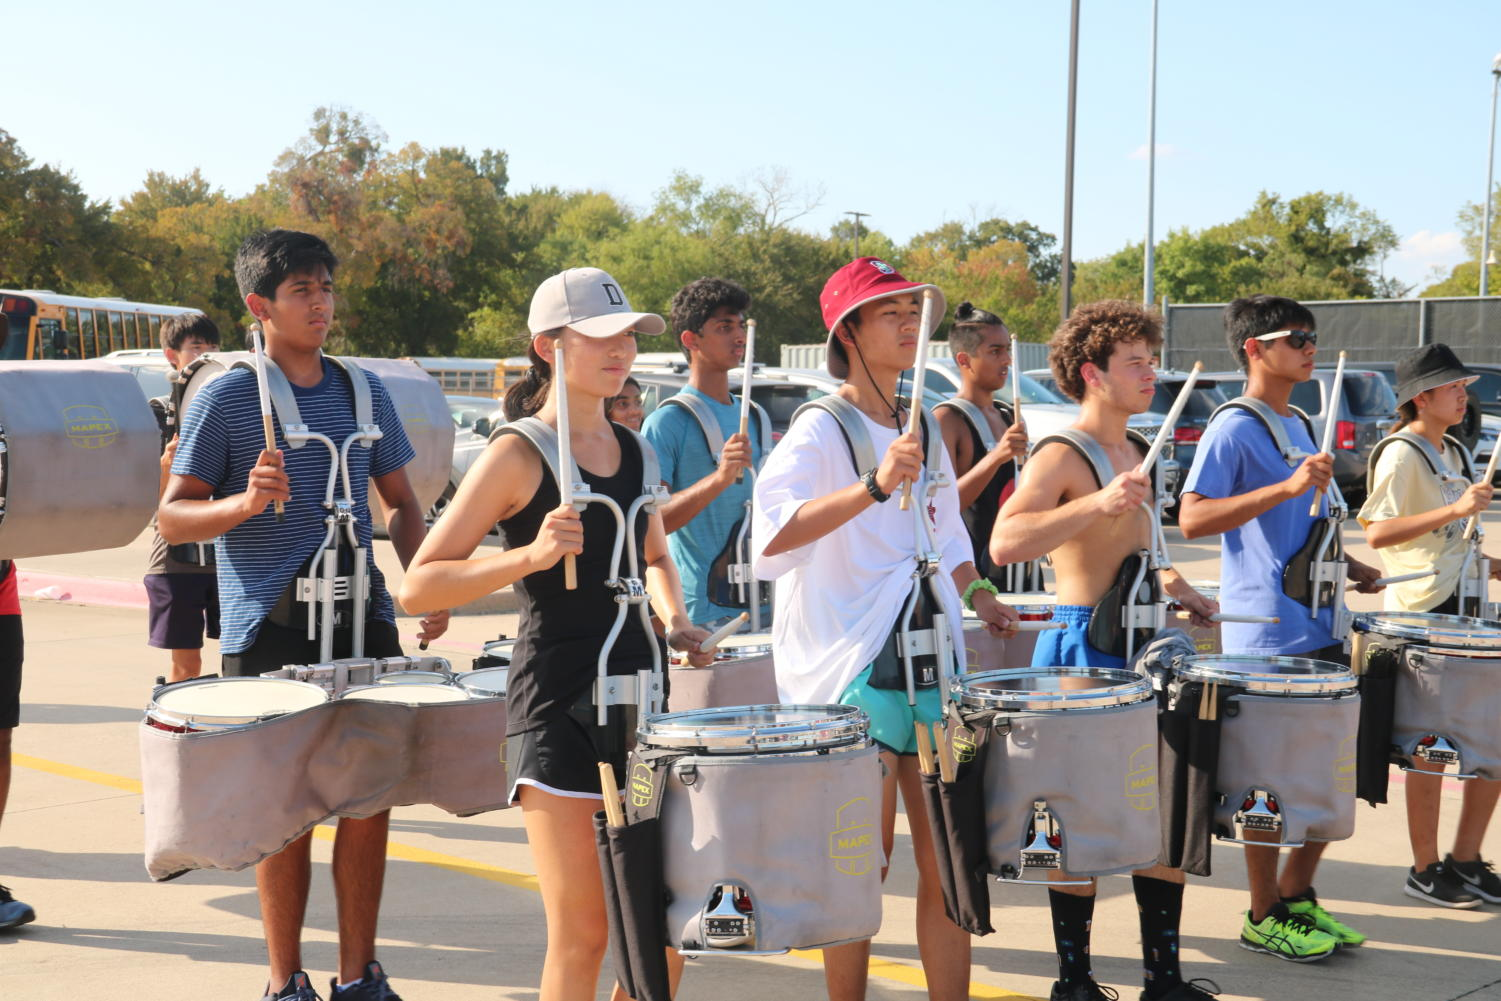 The Coppell Drumline marches after school on Sept. 26 in preparation for the Lewisville Drumline Invitational and Lone Star Classic competitions. The drumline won third place in the HEB Drumline Contest that took place Sept. 14.